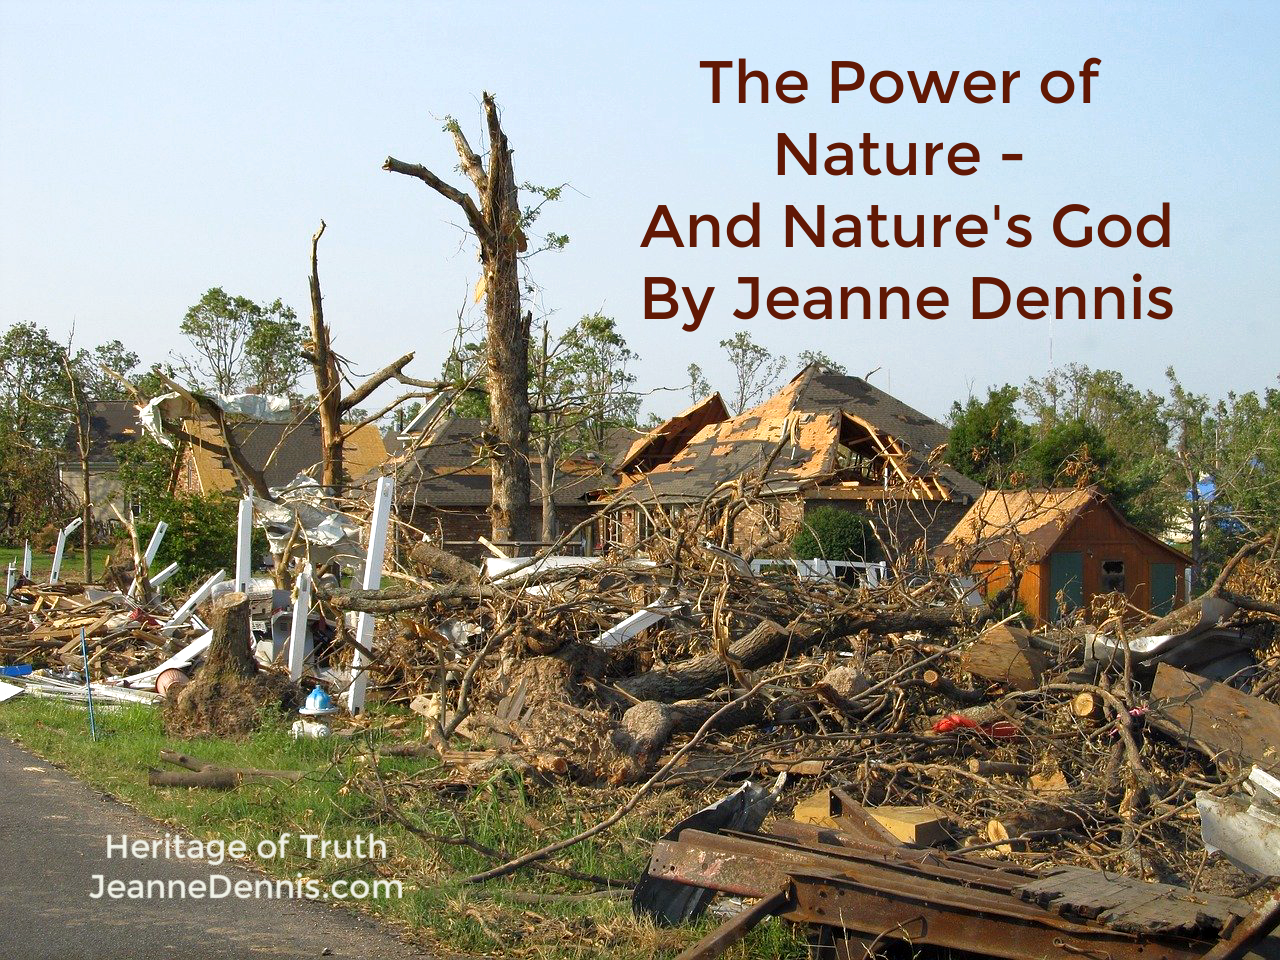 Power of Nature - and Nature's God by Jeanne Dennis, Heritage of Truth, JeanneDennis.com